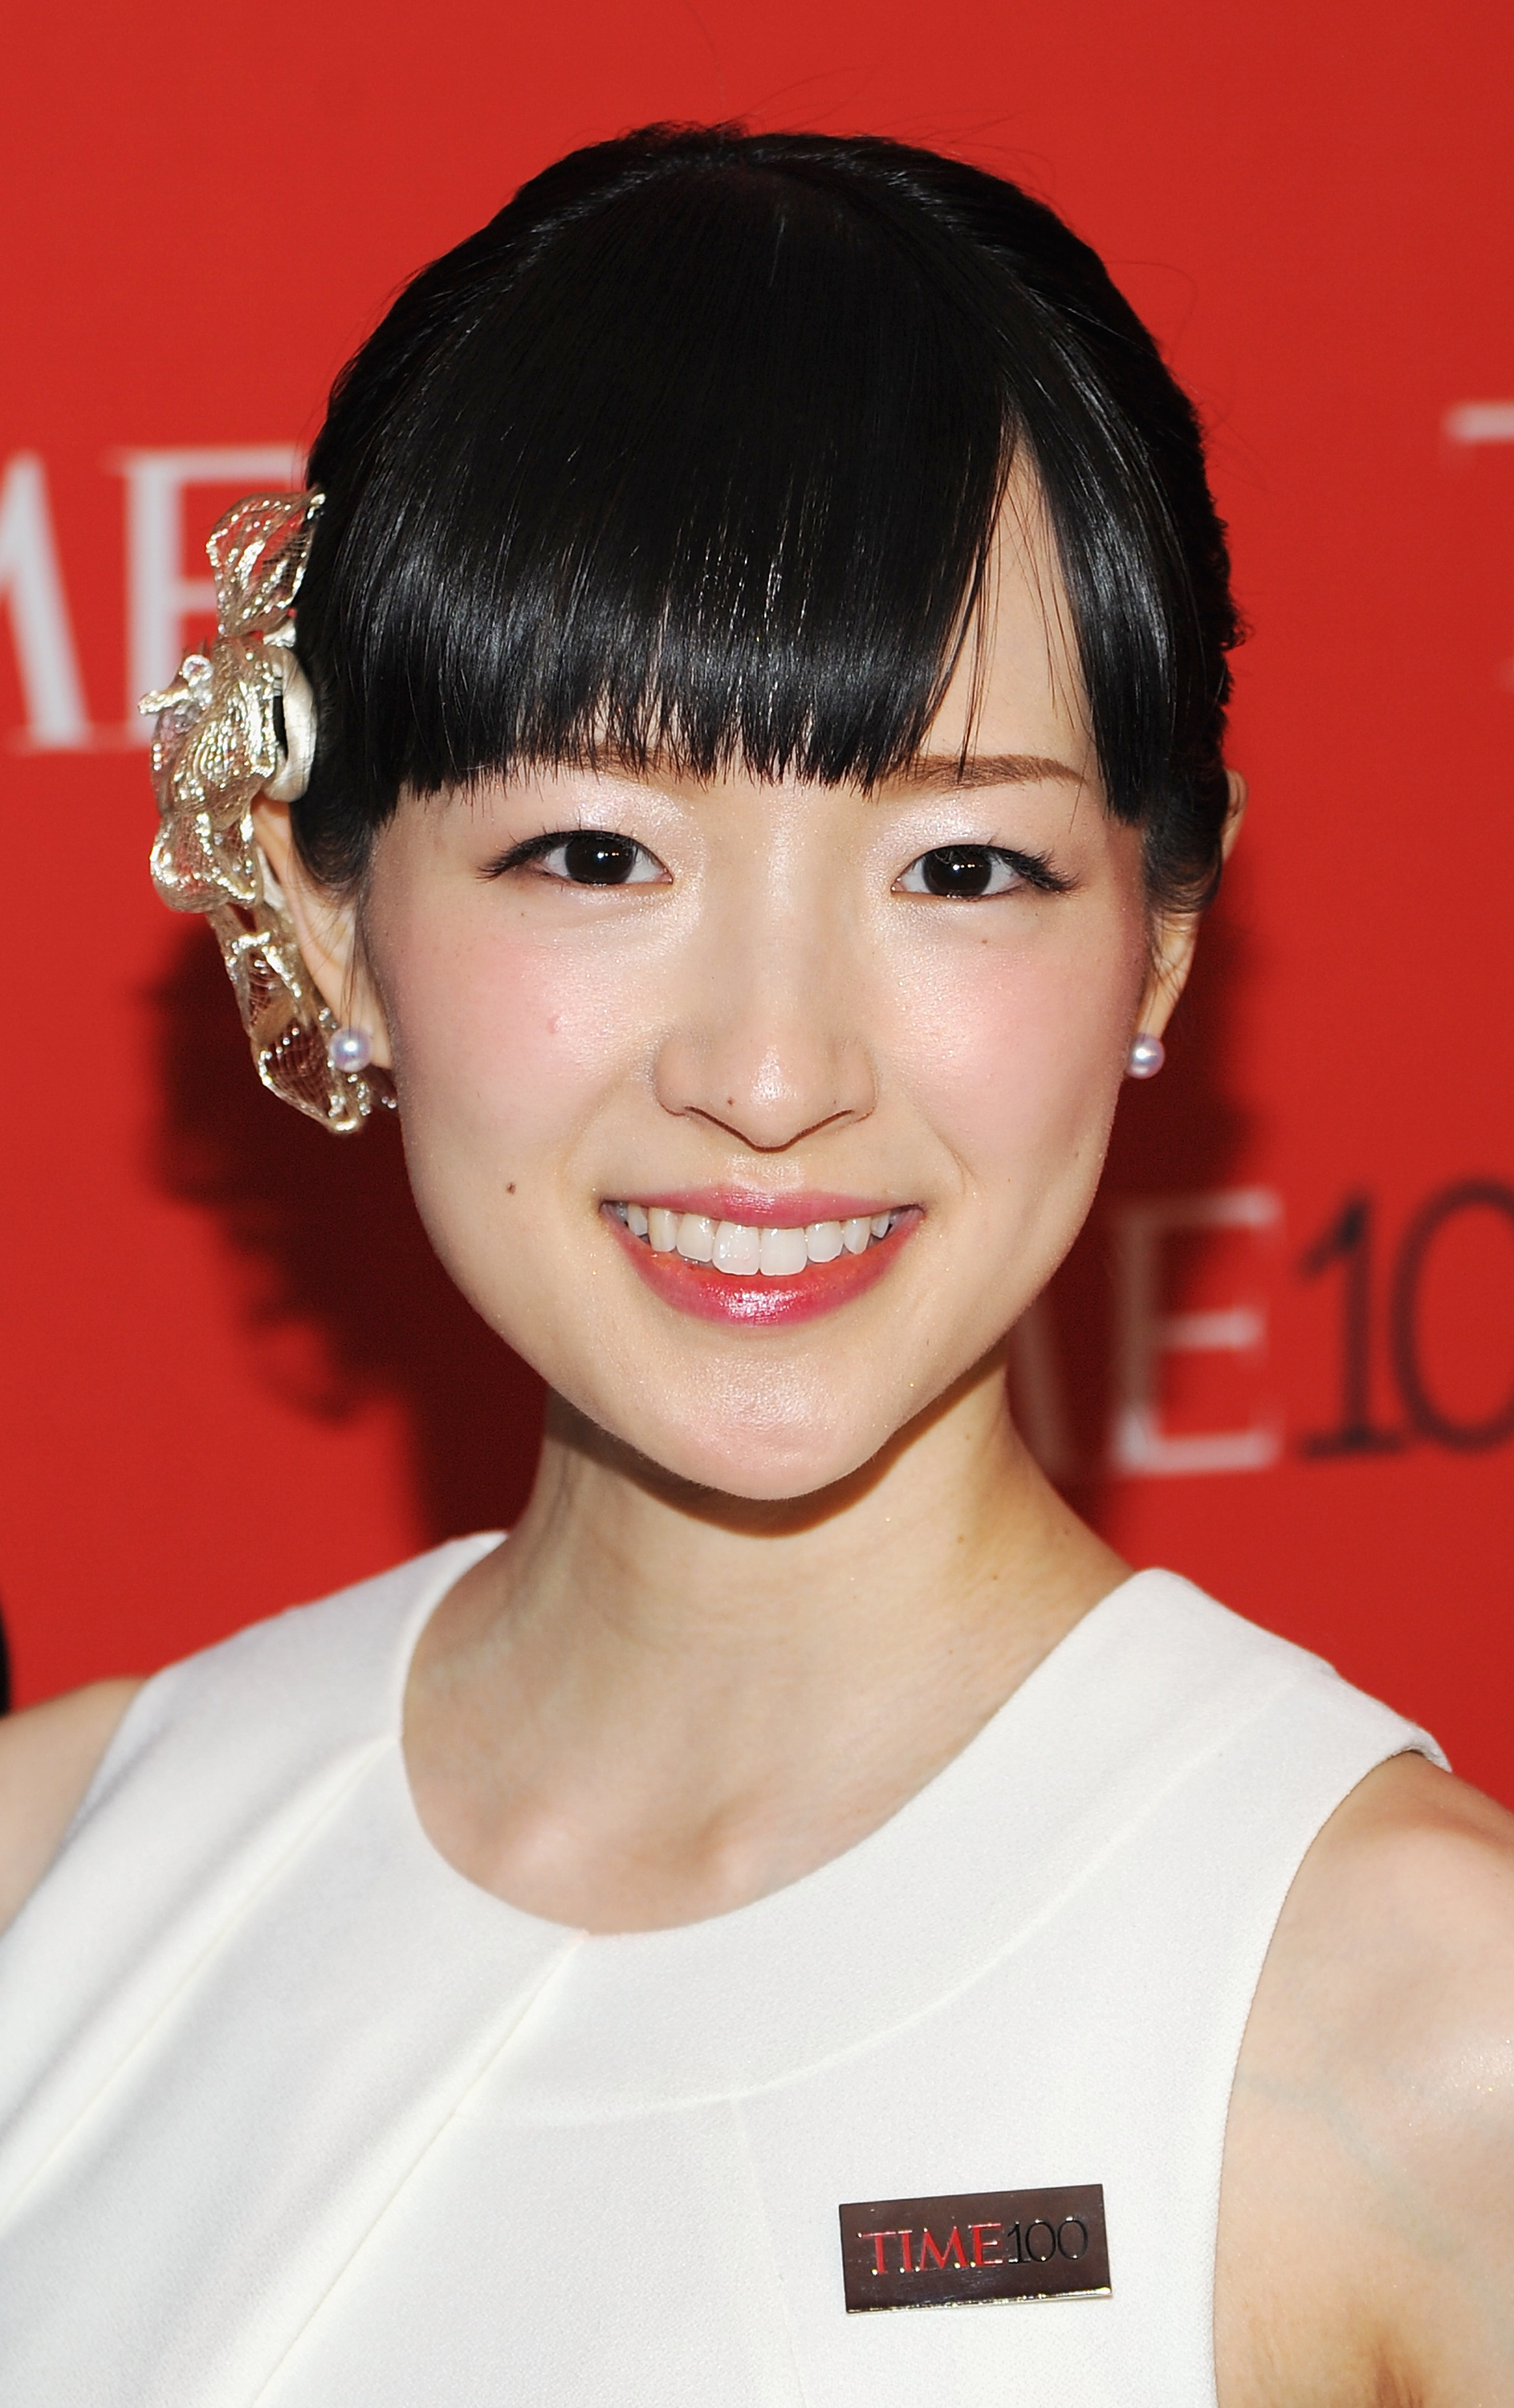 Marie Kondo's Shopping Advice: Touch Everything, Buy Only What Brings Joy